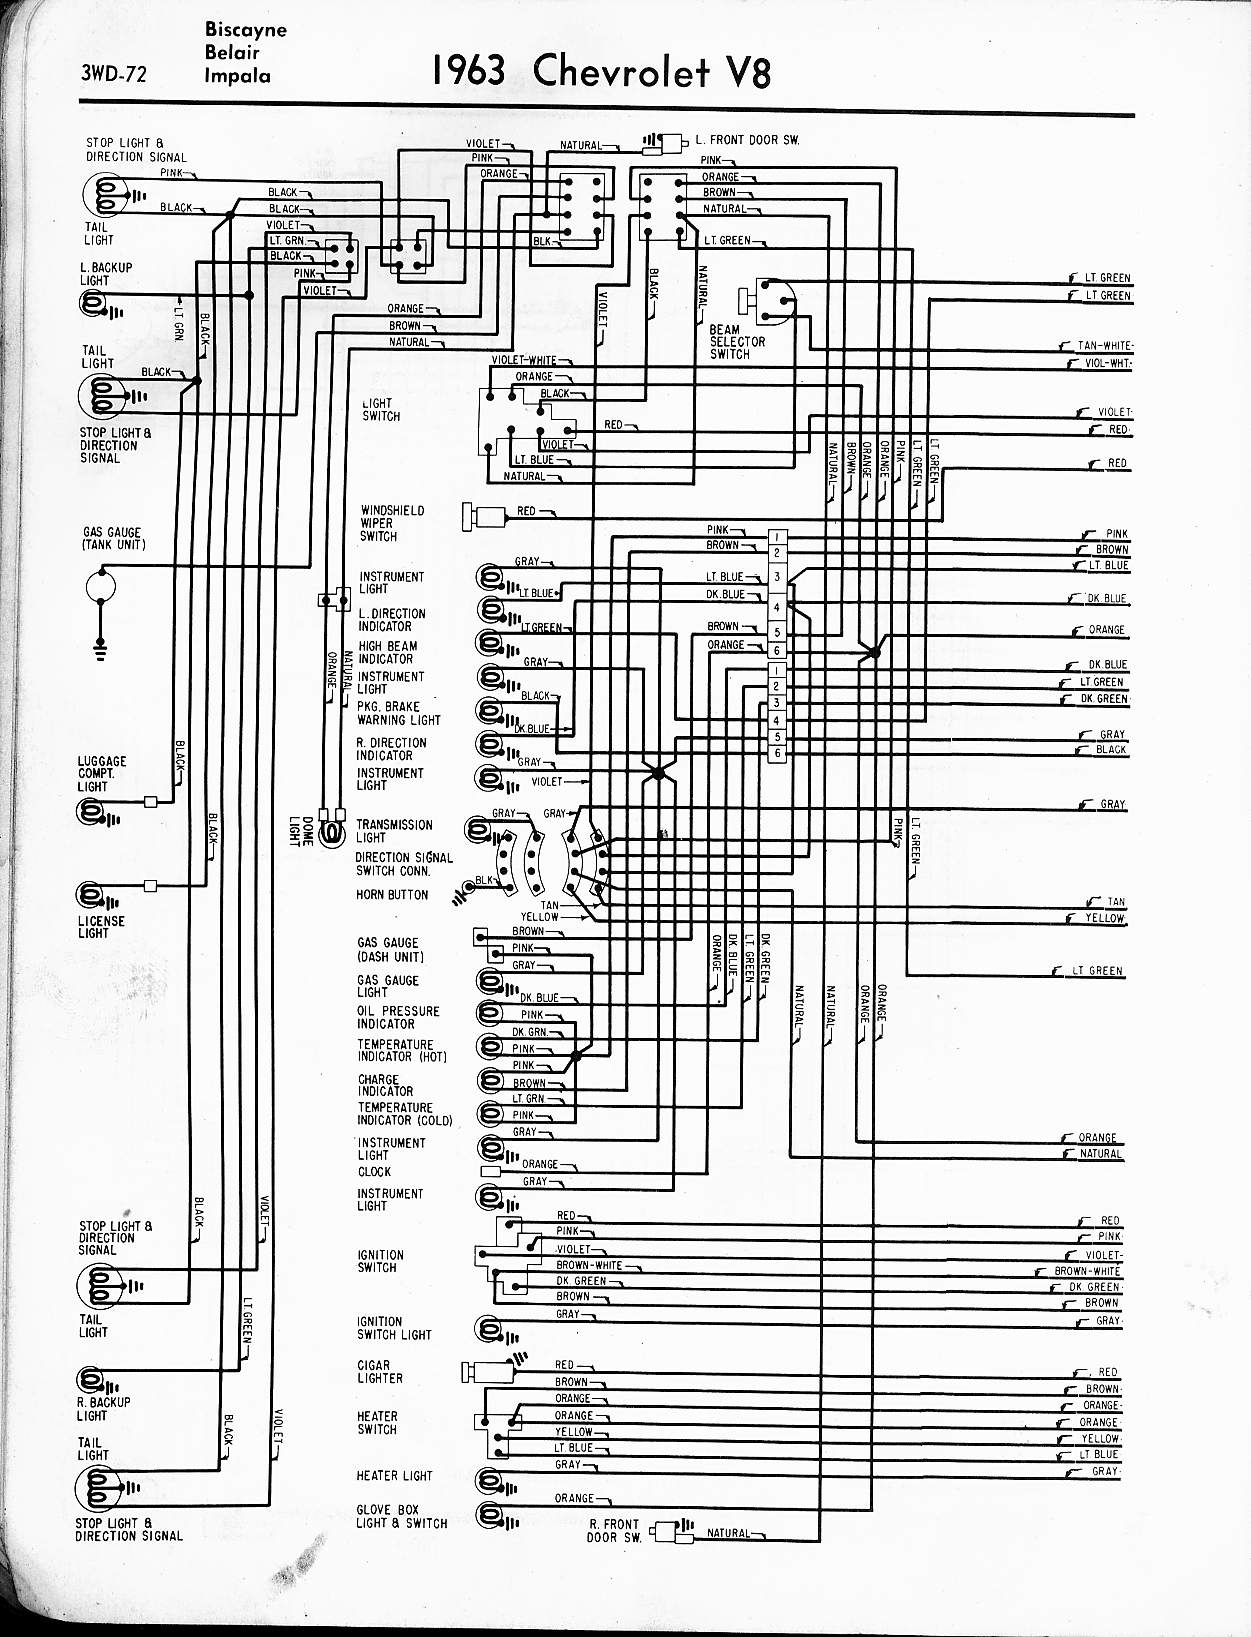 [WRG-1757] Chevy 454 Engine Starter Wiring Diagram Free